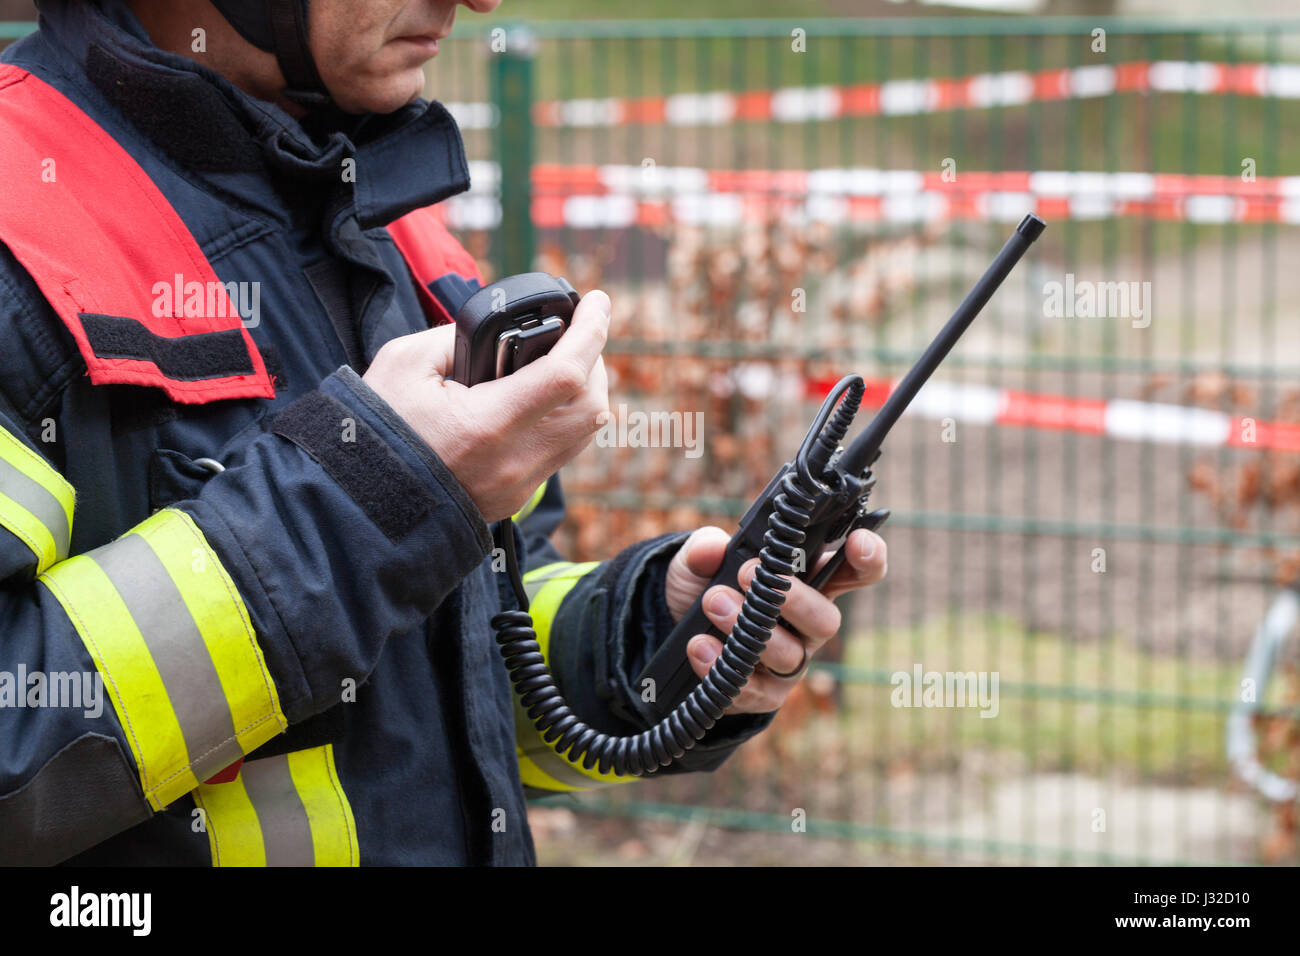 German firefighter leader used a walkie talkie in action Stock Photo